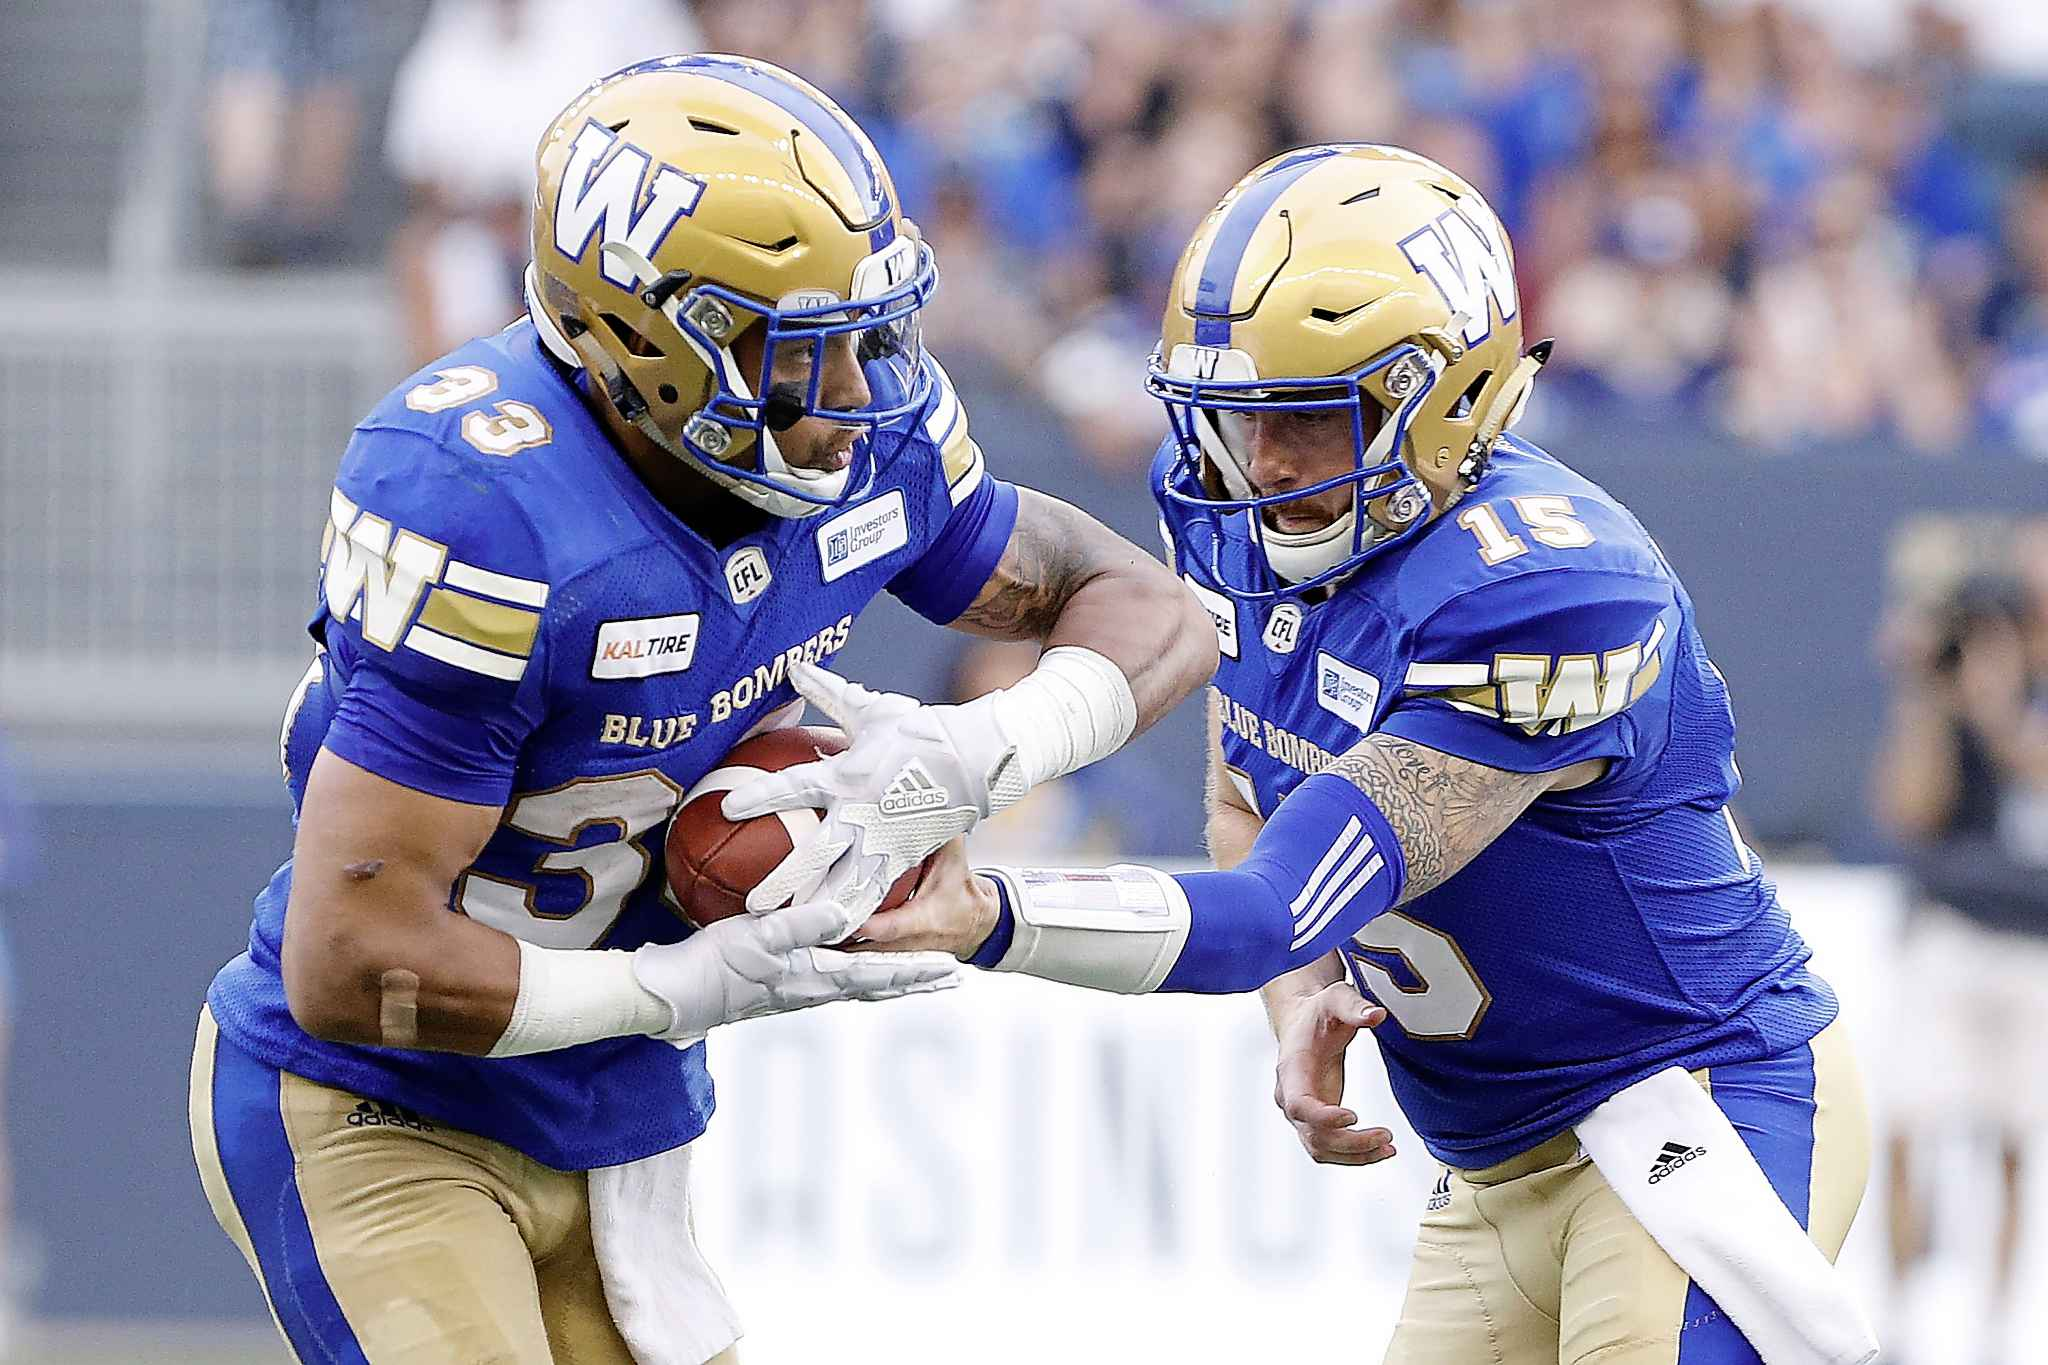 Winnipeg Blue Bombers quarterback Matt Nichols hands off to Andrew Harris during the first half against the BC Lions last Saturday.